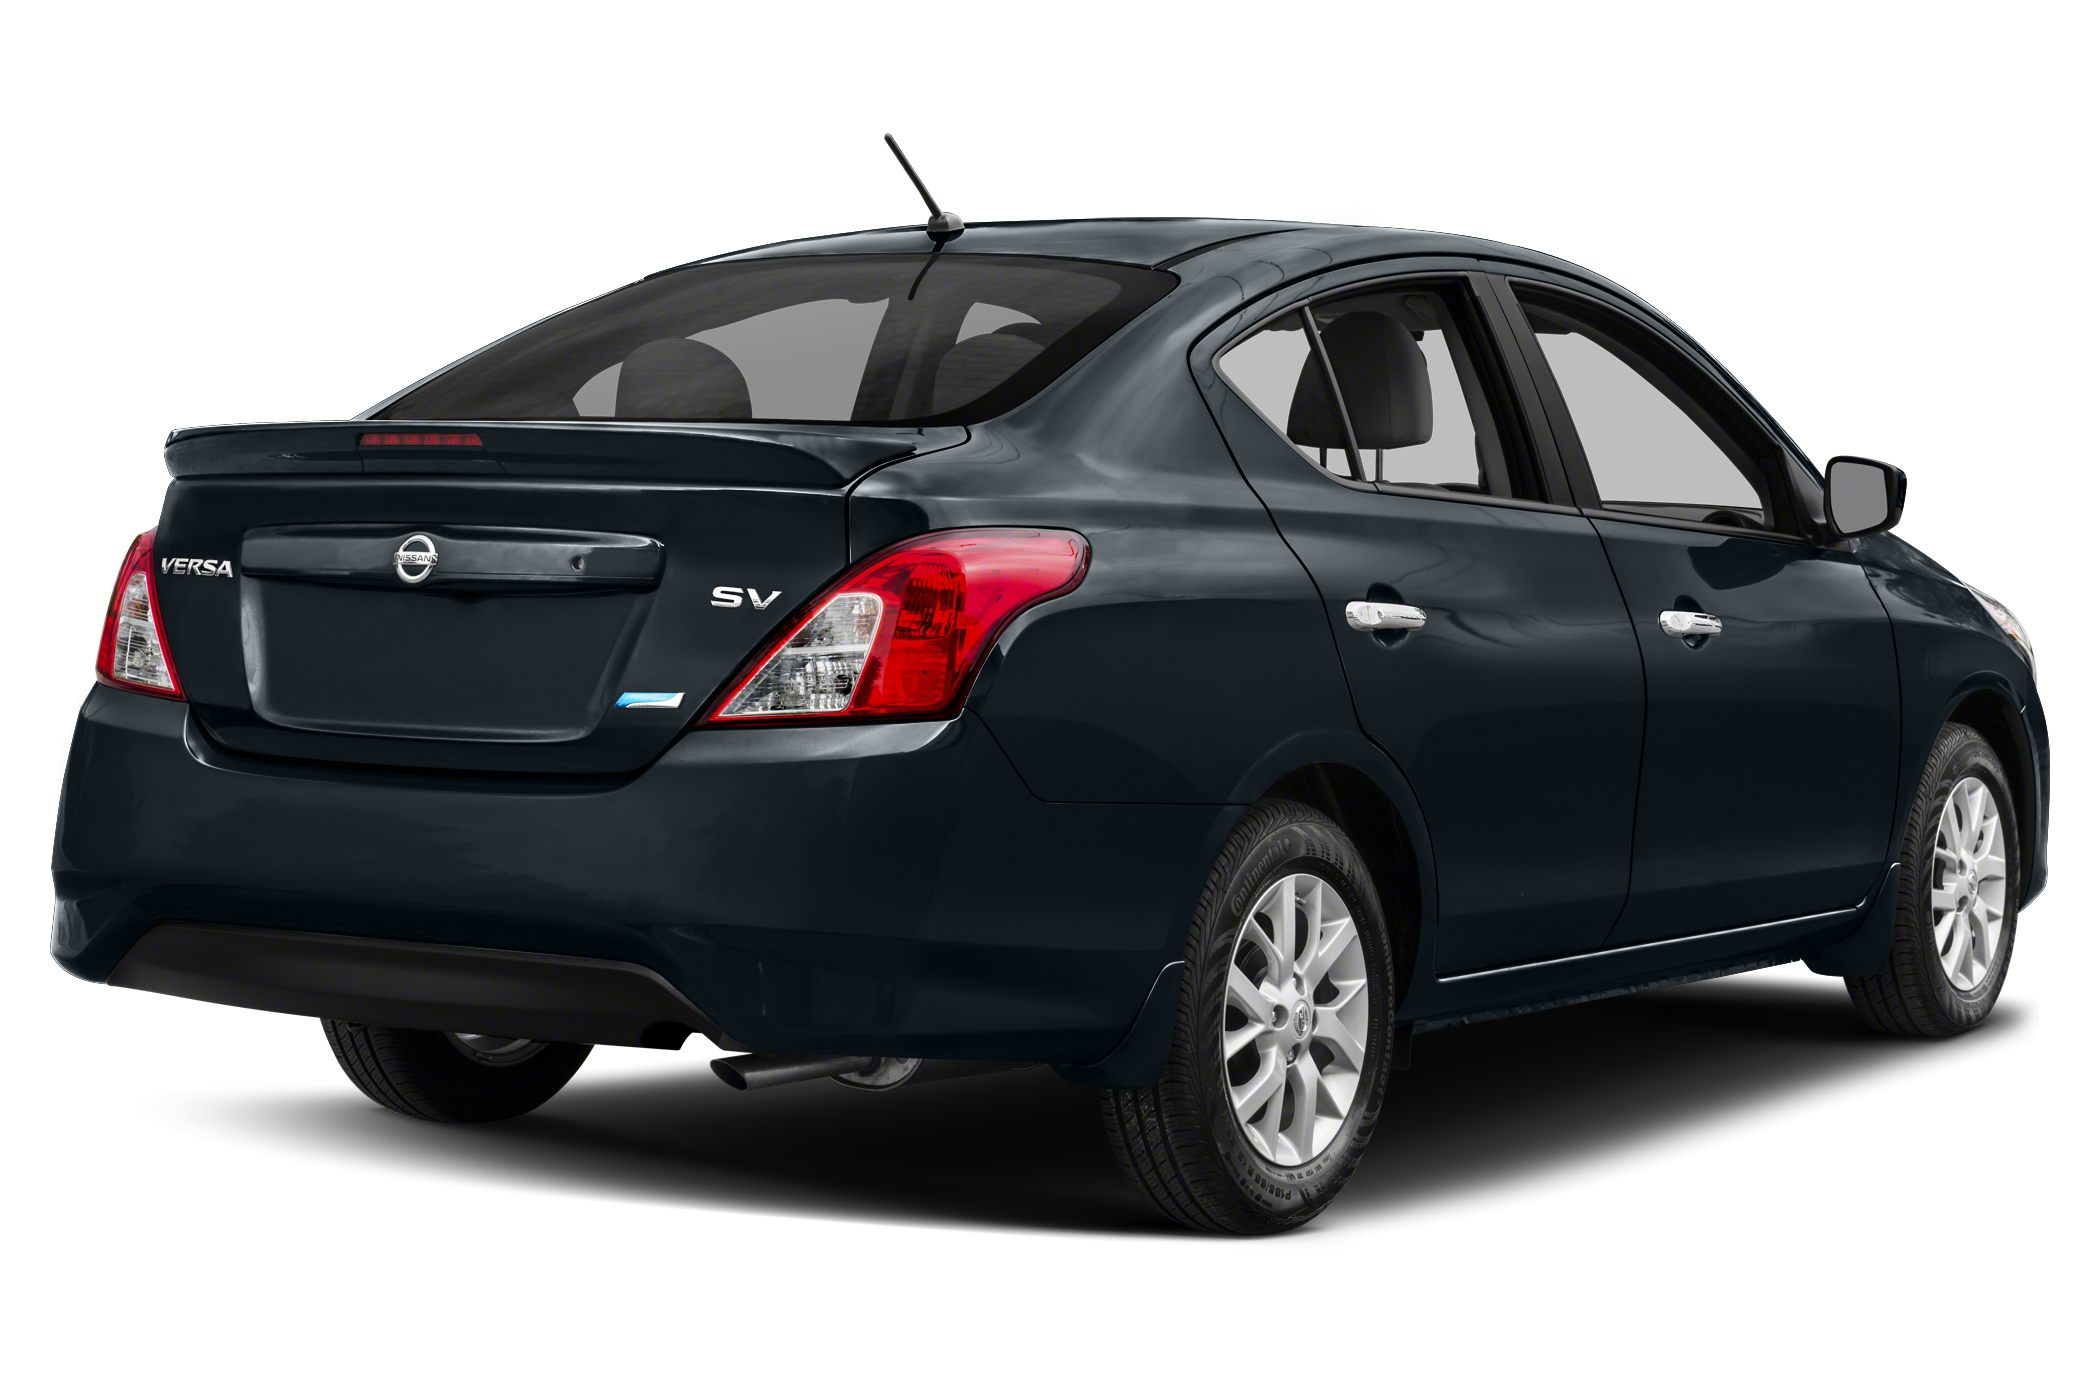 Nissan Versa Mpg >> 2017 Nissan Versa Reviews, Specs and Prices | Cars.com